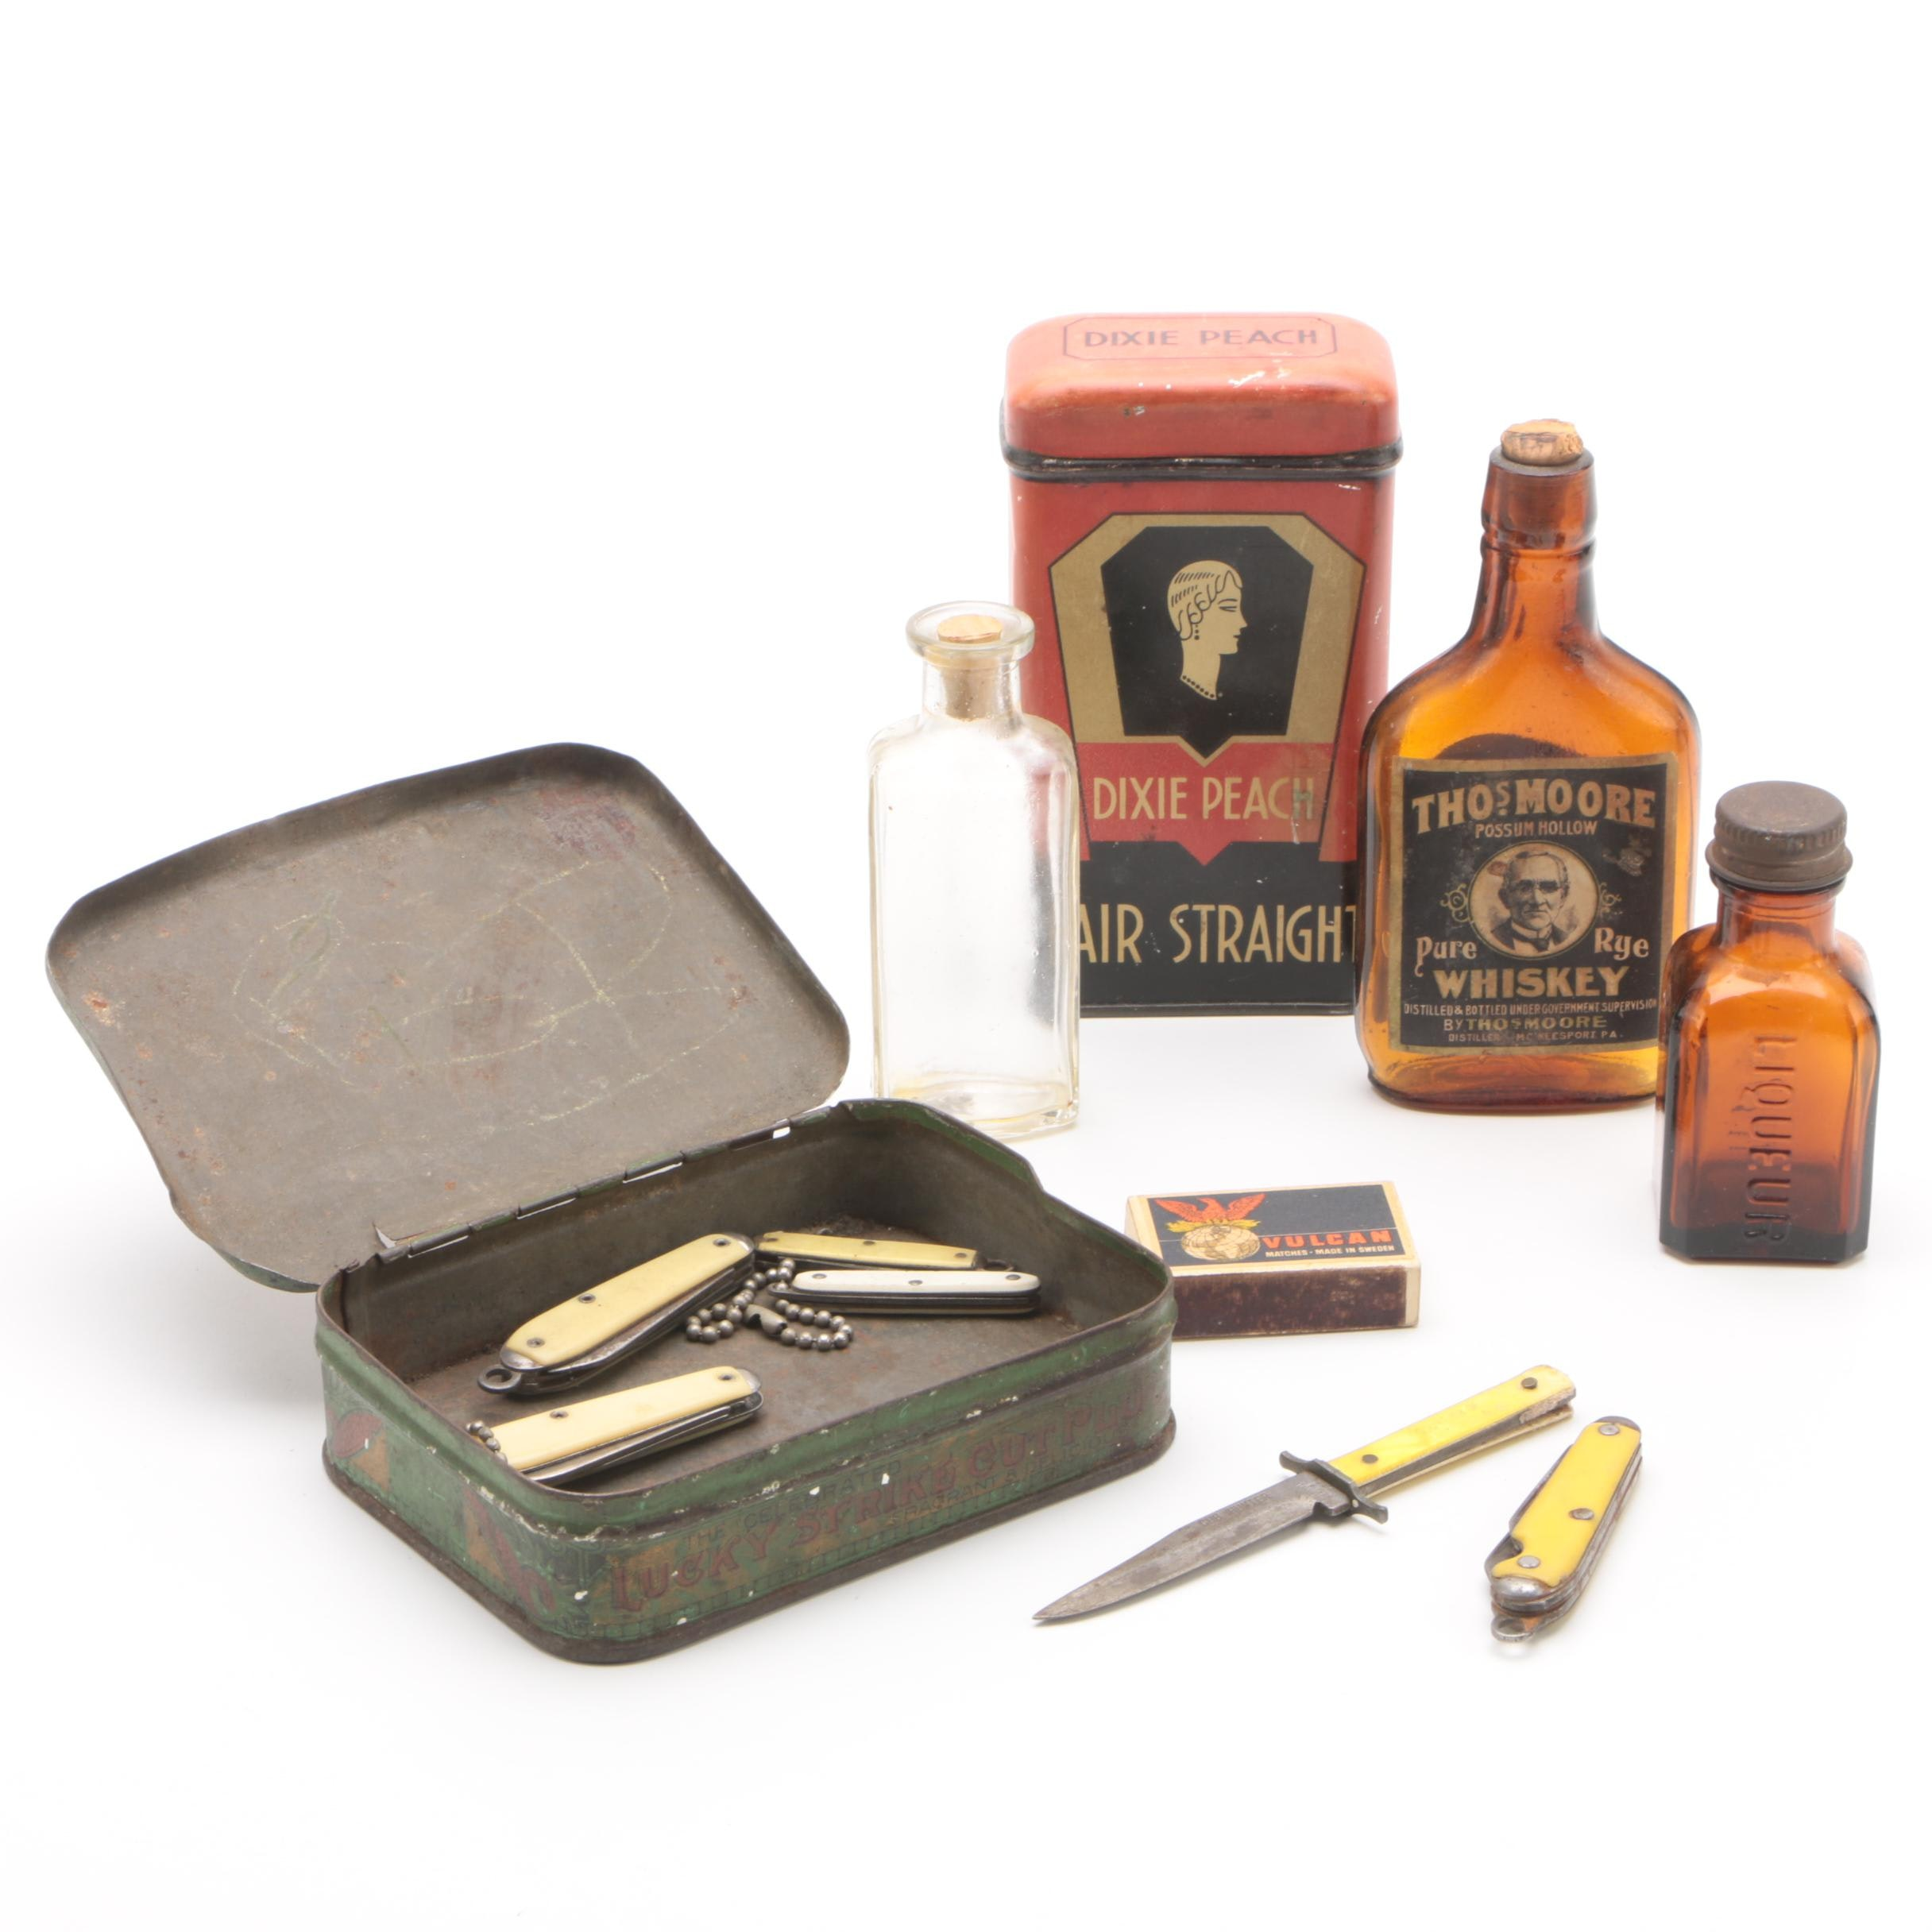 Dixie Peach Hair Straight and Lucky Strike Tins, Bottles, Knives and More